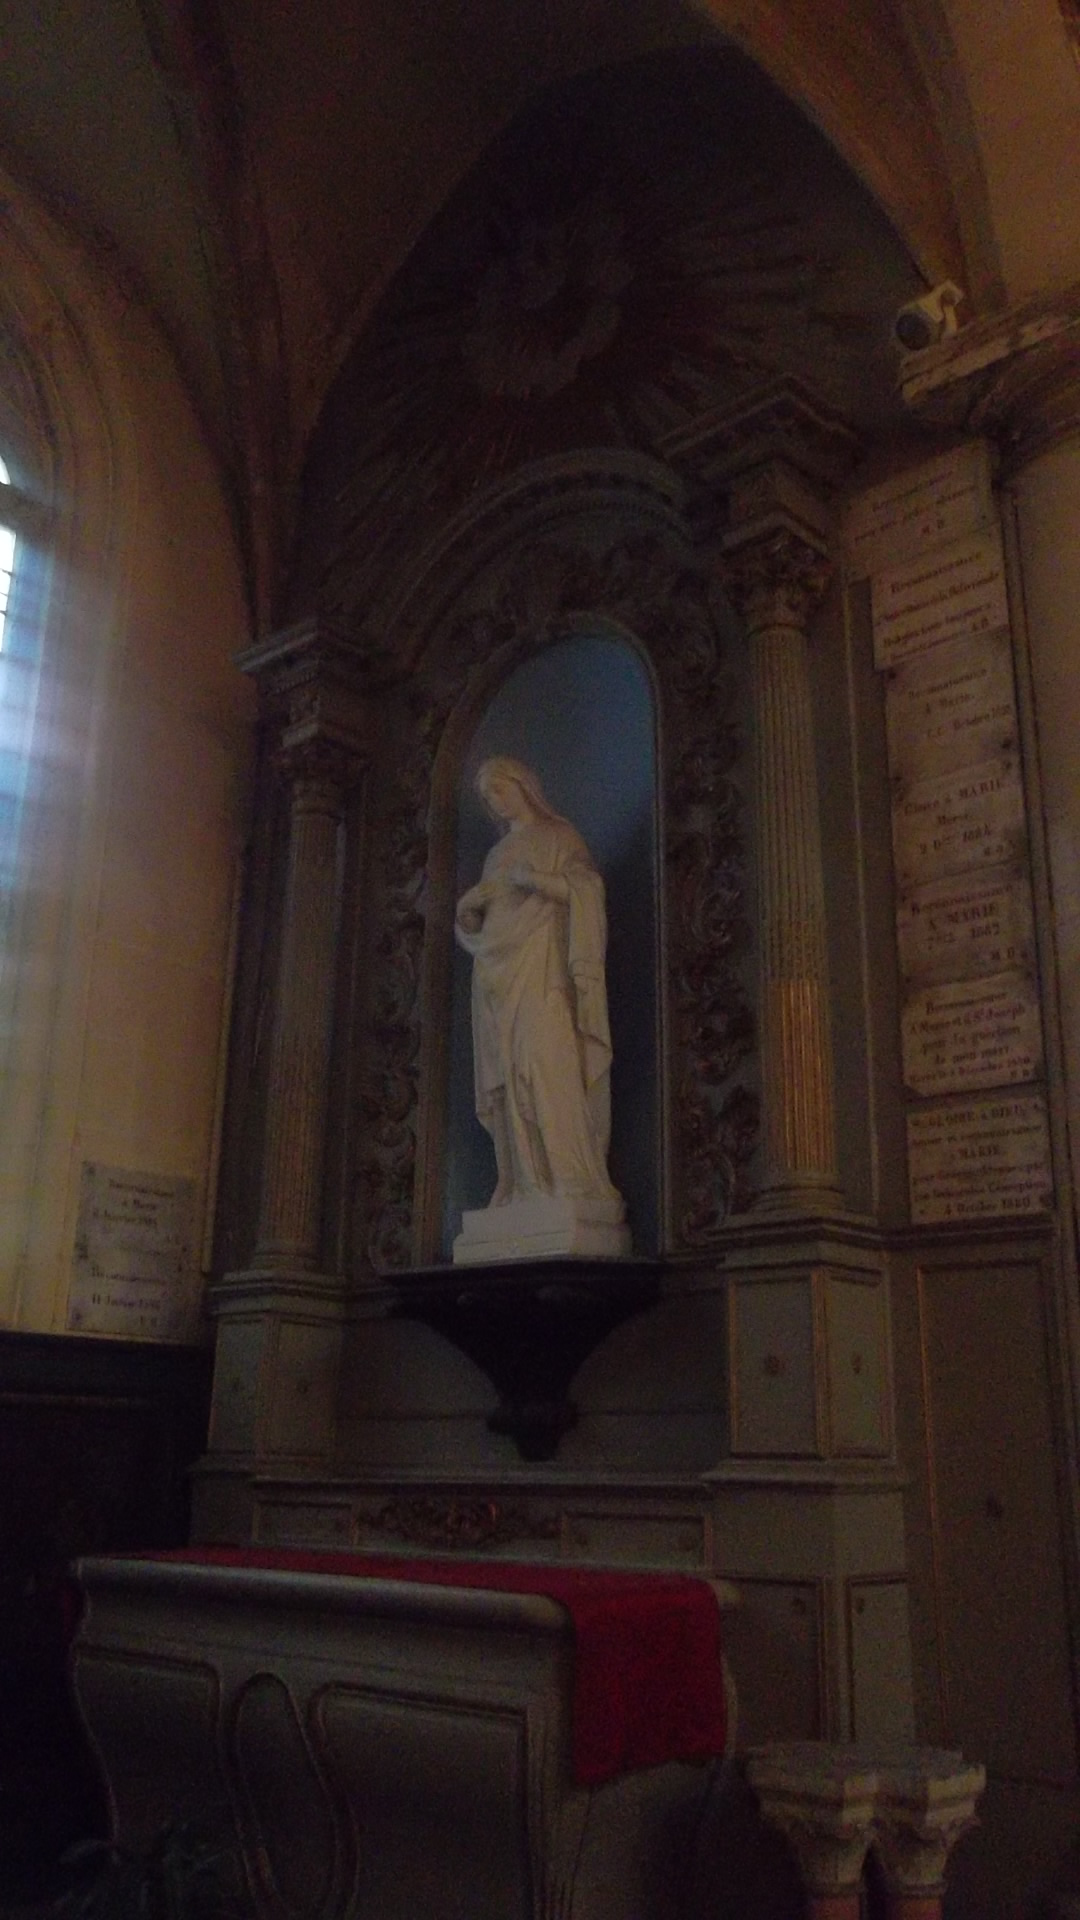 le havre ch st francois chapel vierge mary my13